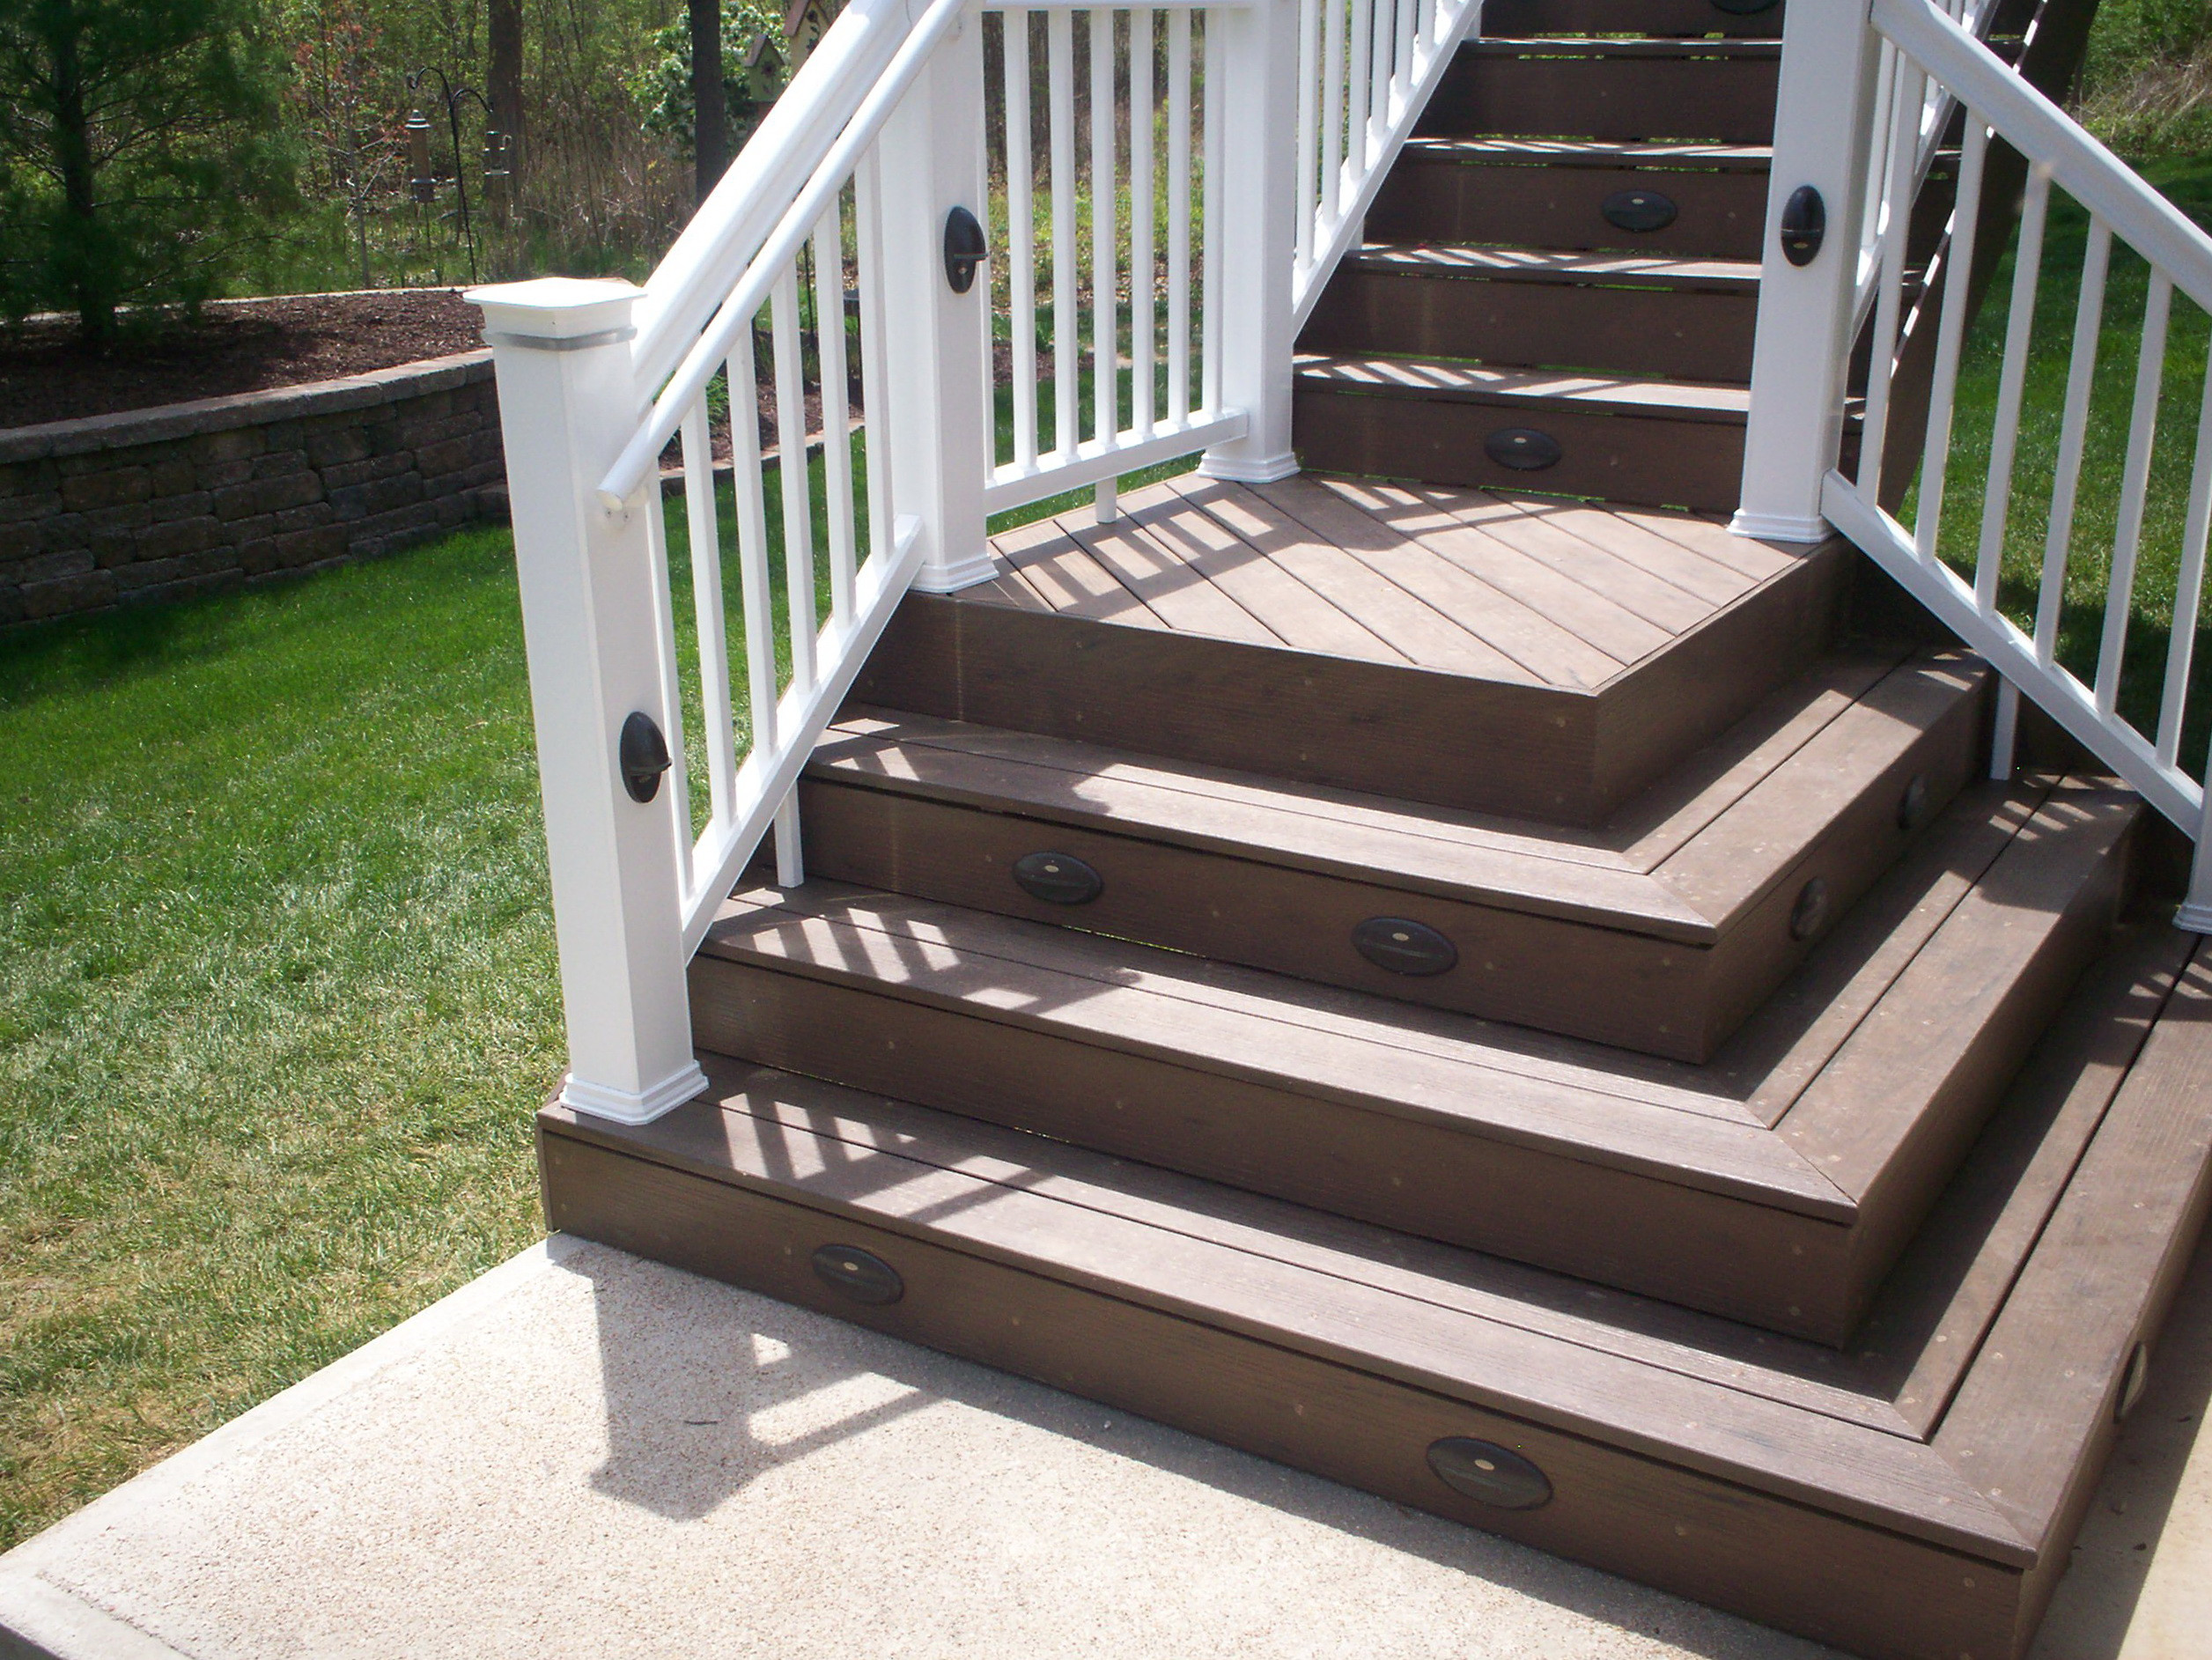 Best ideas about Deck Stairs Code . Save or Pin Deck Handrail Code Height Now.